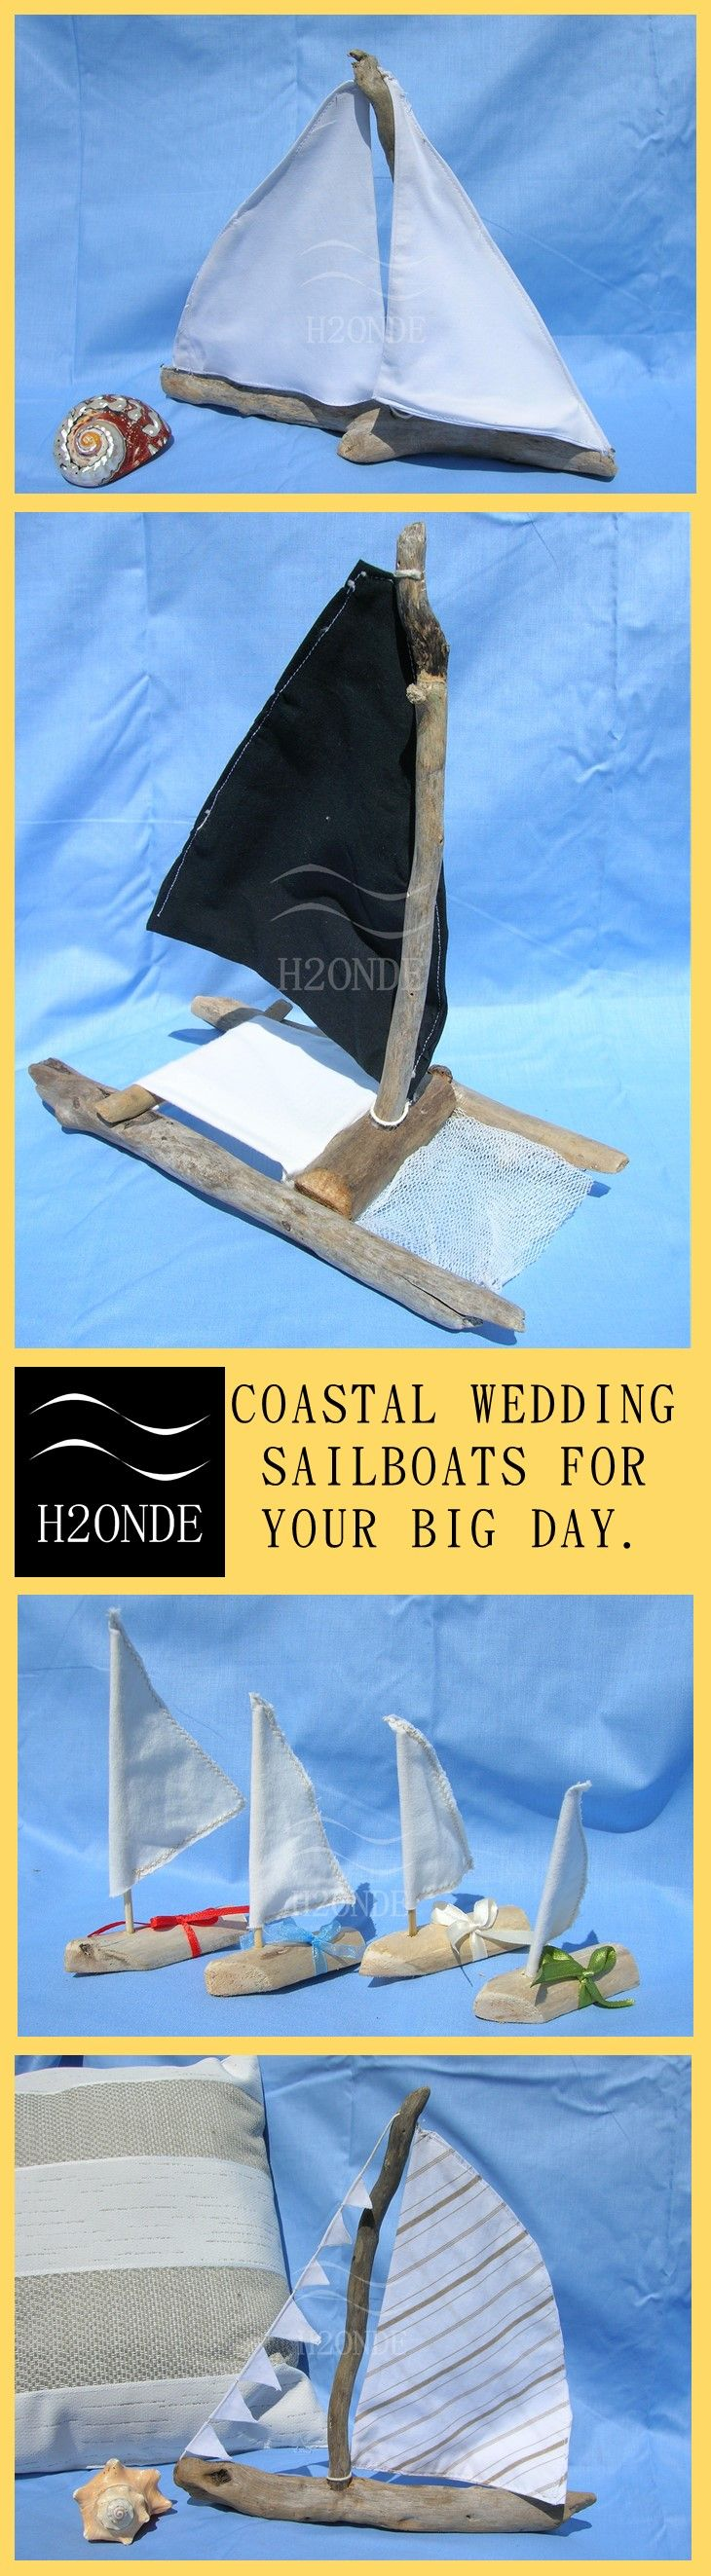 cake topper  nautical wedding  sailing decor  driftwood beach art  ocean sailboat  wedding centerpiece boat party favors  sailboat centerpiece  wedding favors  baptism favors  holy communion favor  birthdays favor driftwood sailboat driftwood boat  nautical decor  sailing decor  centerpiece  boat cake topper  wooden toy sailboat  rustic  wood boat wedding  coastal style  wooden sailboat  coastal ocean gift wood boat  lake house  wood toy  driftwood beach art  coastal art ocean sailboat…